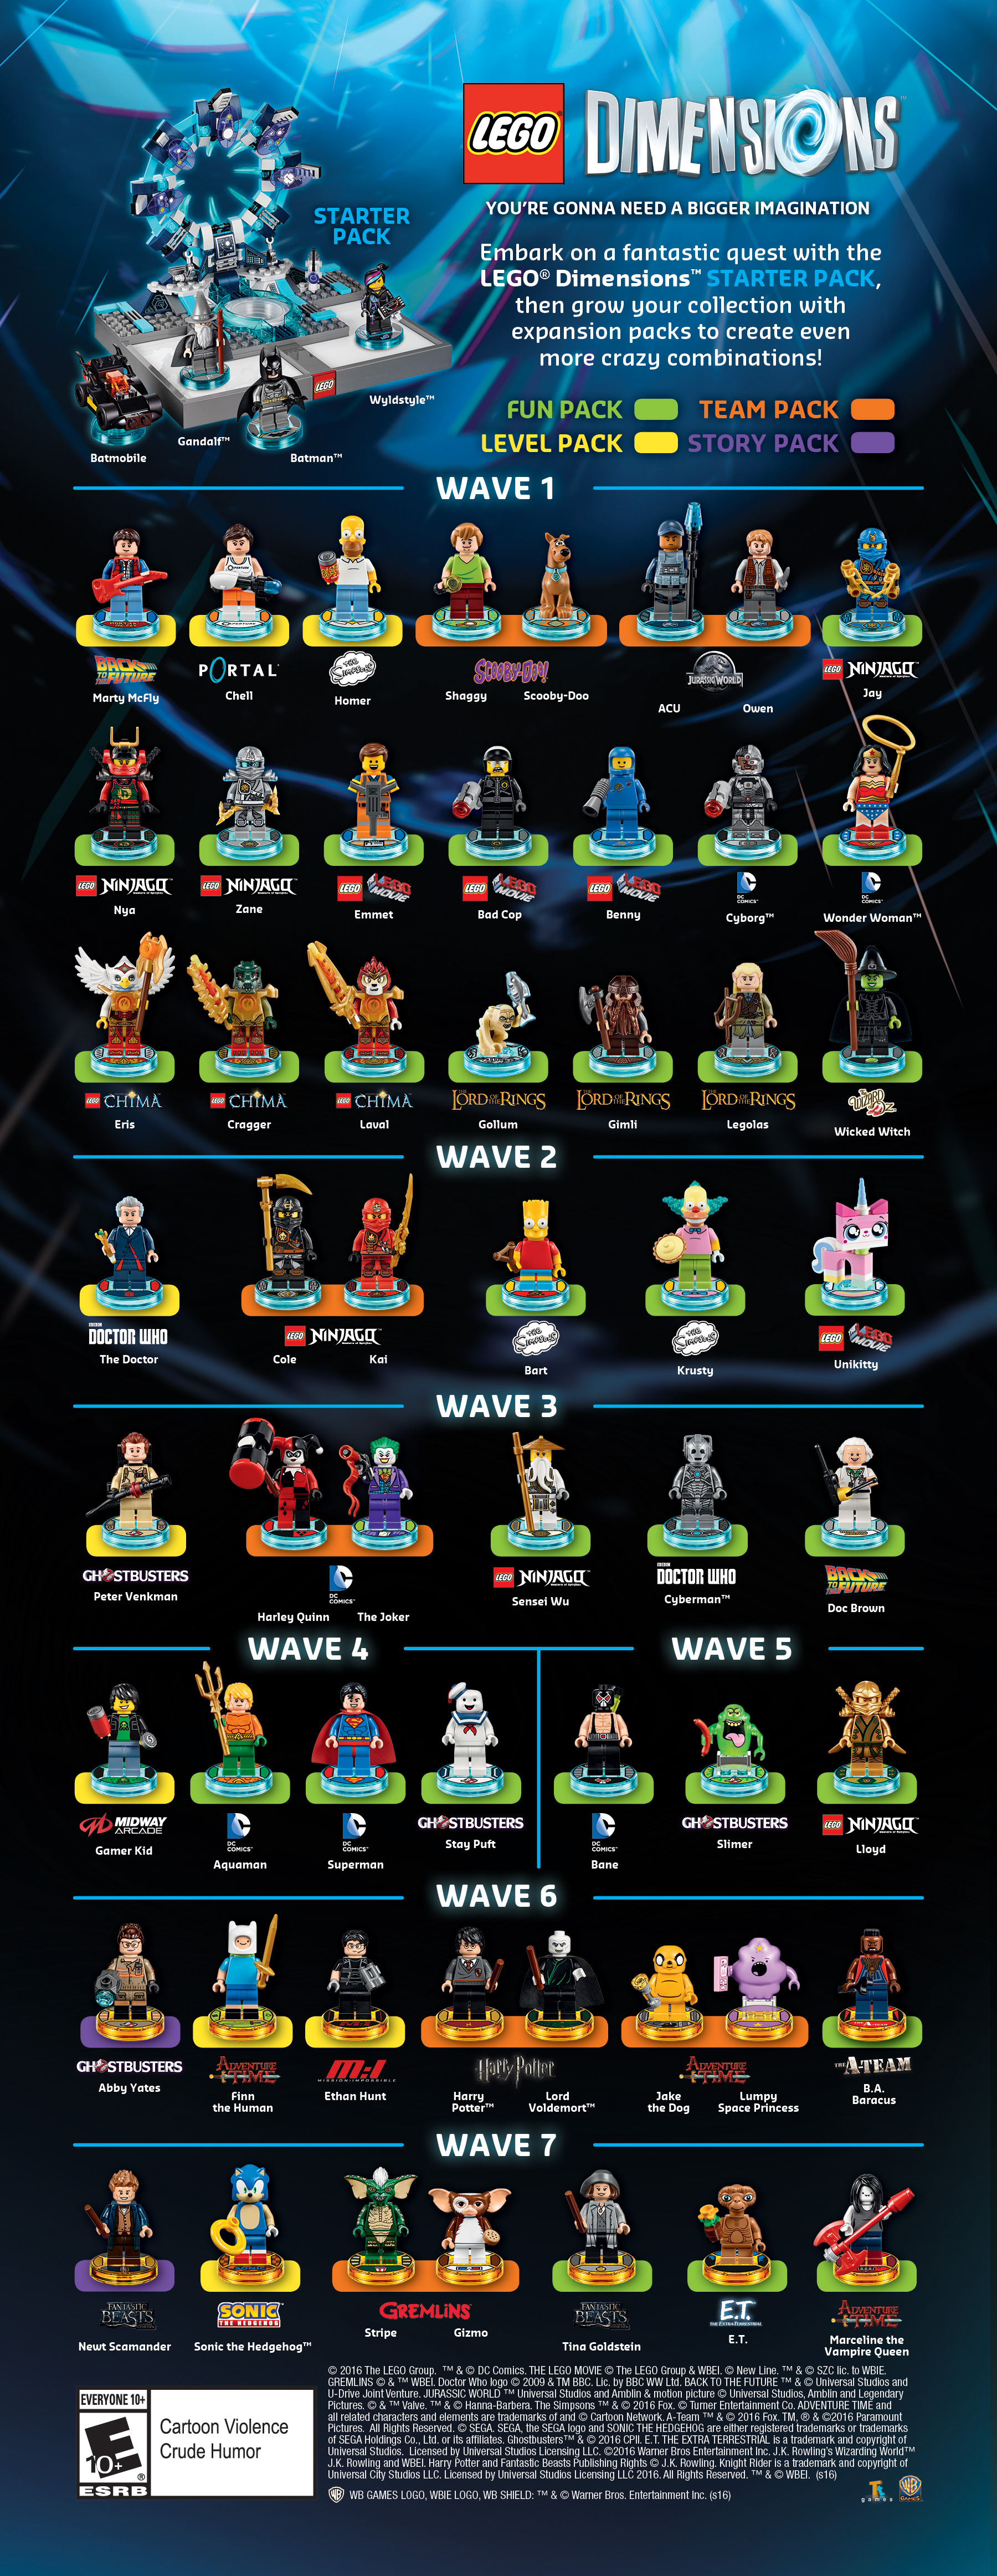 High Resolution Wallpaper | LEGO Dimensions 1800x4650 px